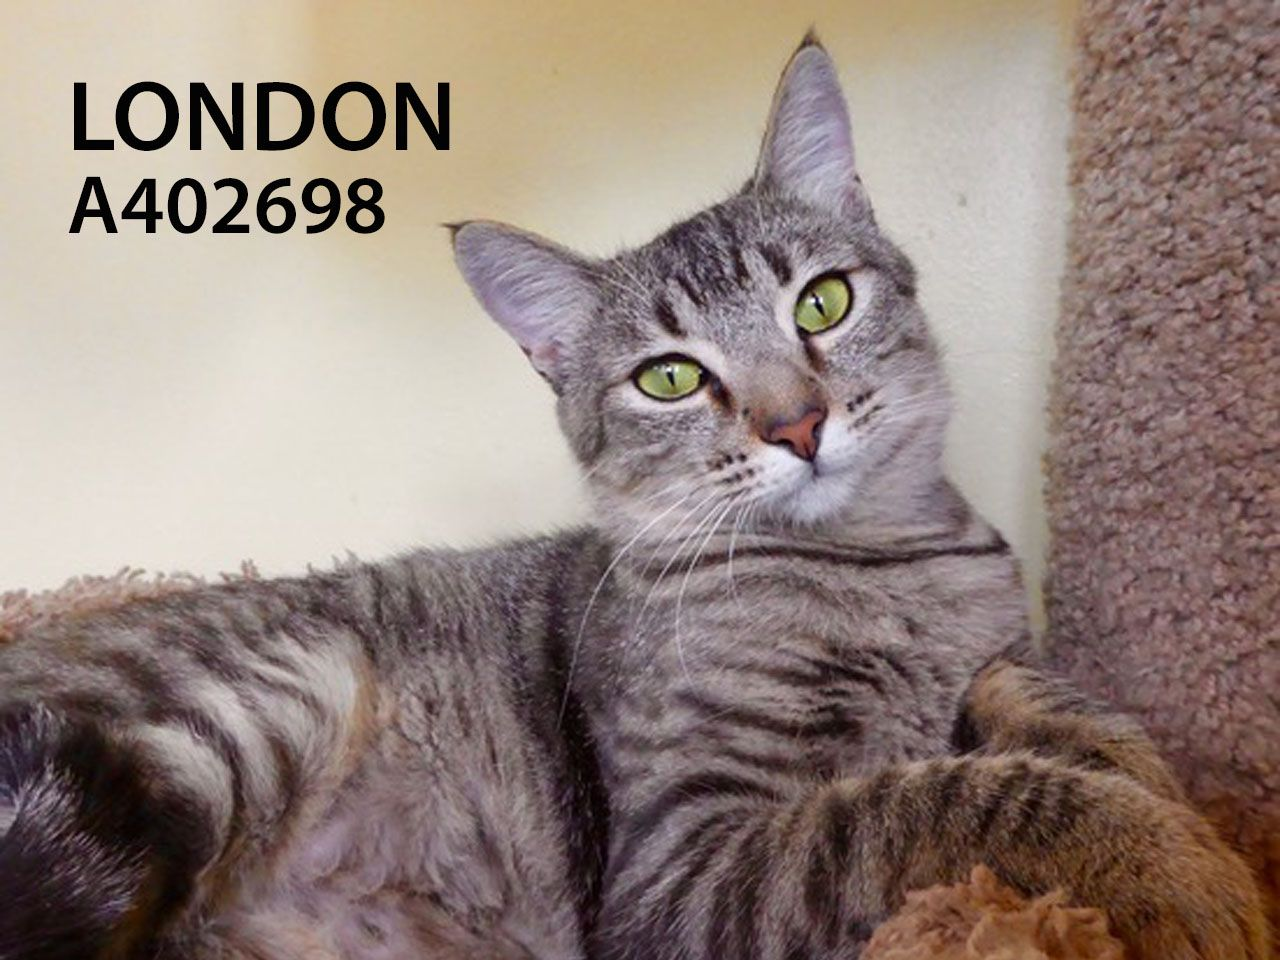 London Calling And You Will Be So Happy If You Answer This Not Quite An Adult And Still Very Kittenish 1 Year Old Beauty With Images Cat Adoption Pets Cats And Kittens